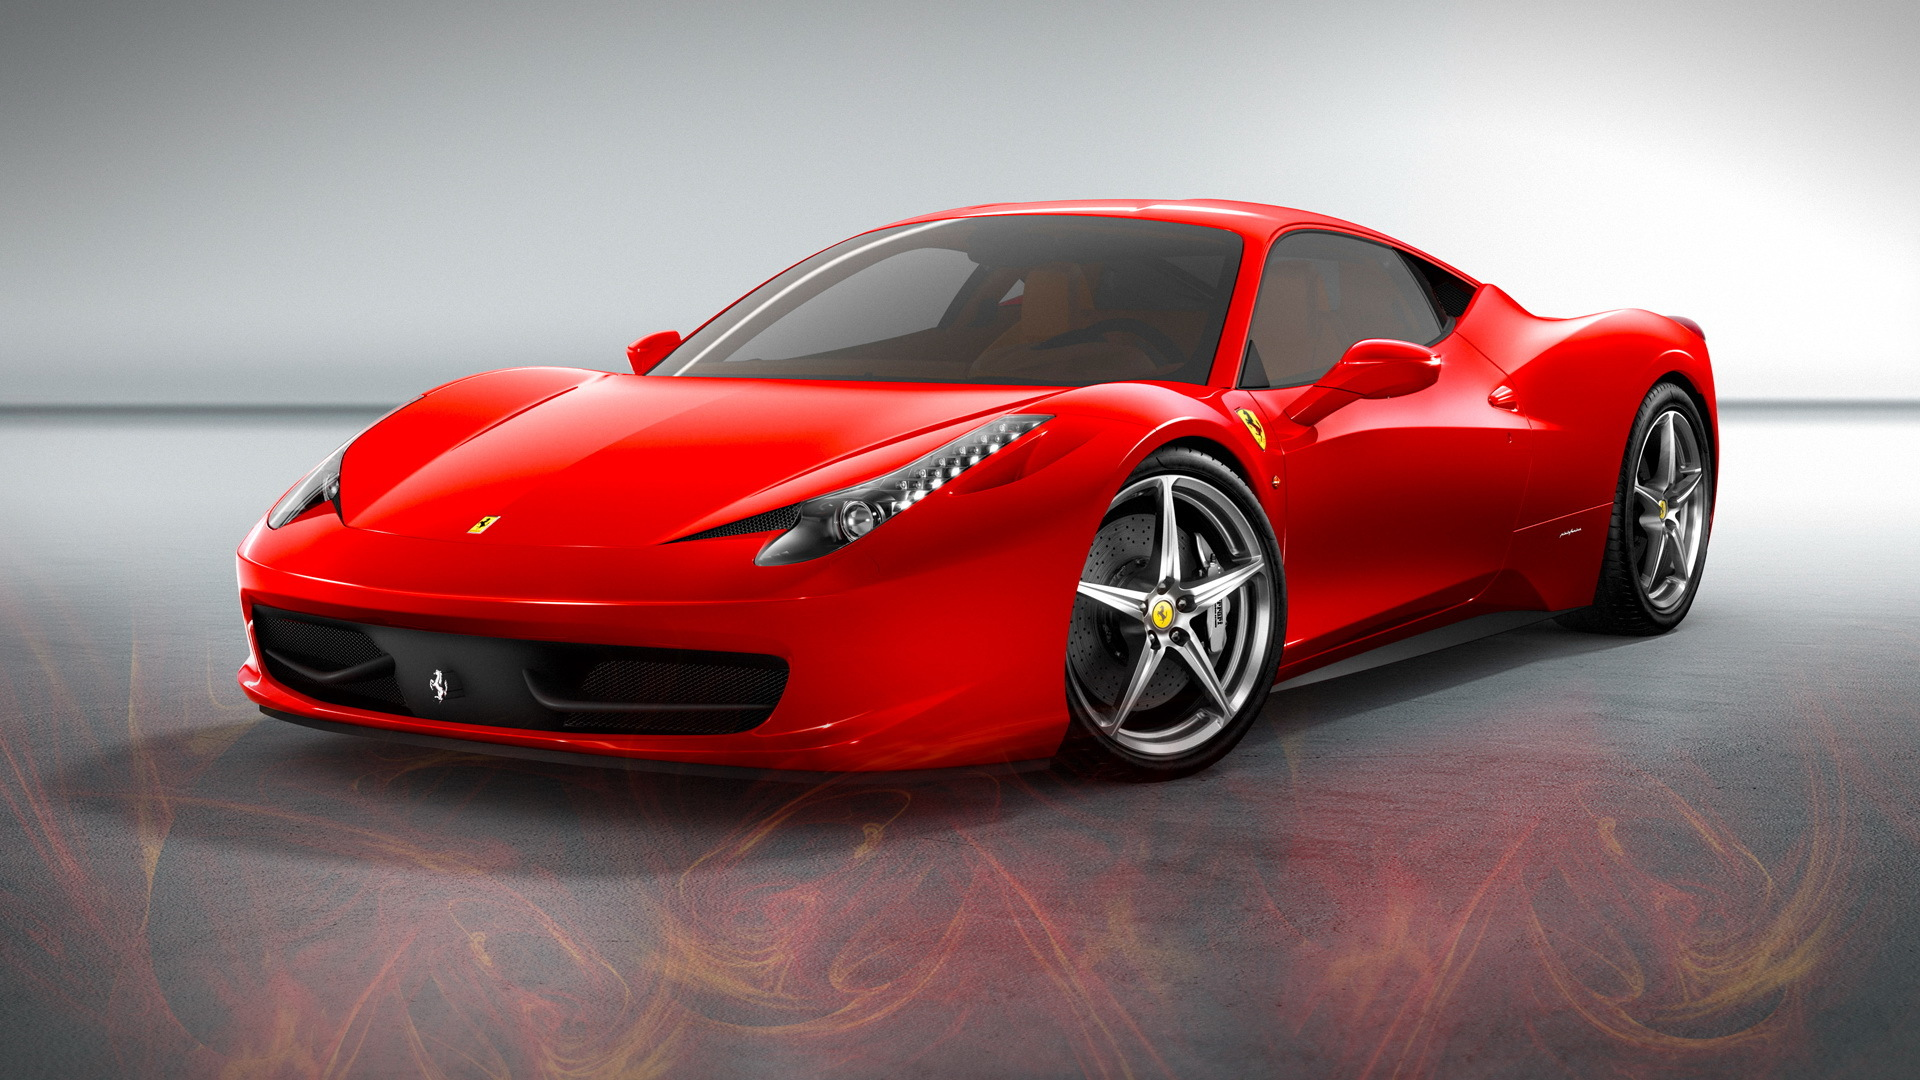 49652 download wallpaper Transport, Auto, Ferrari screensavers and pictures for free